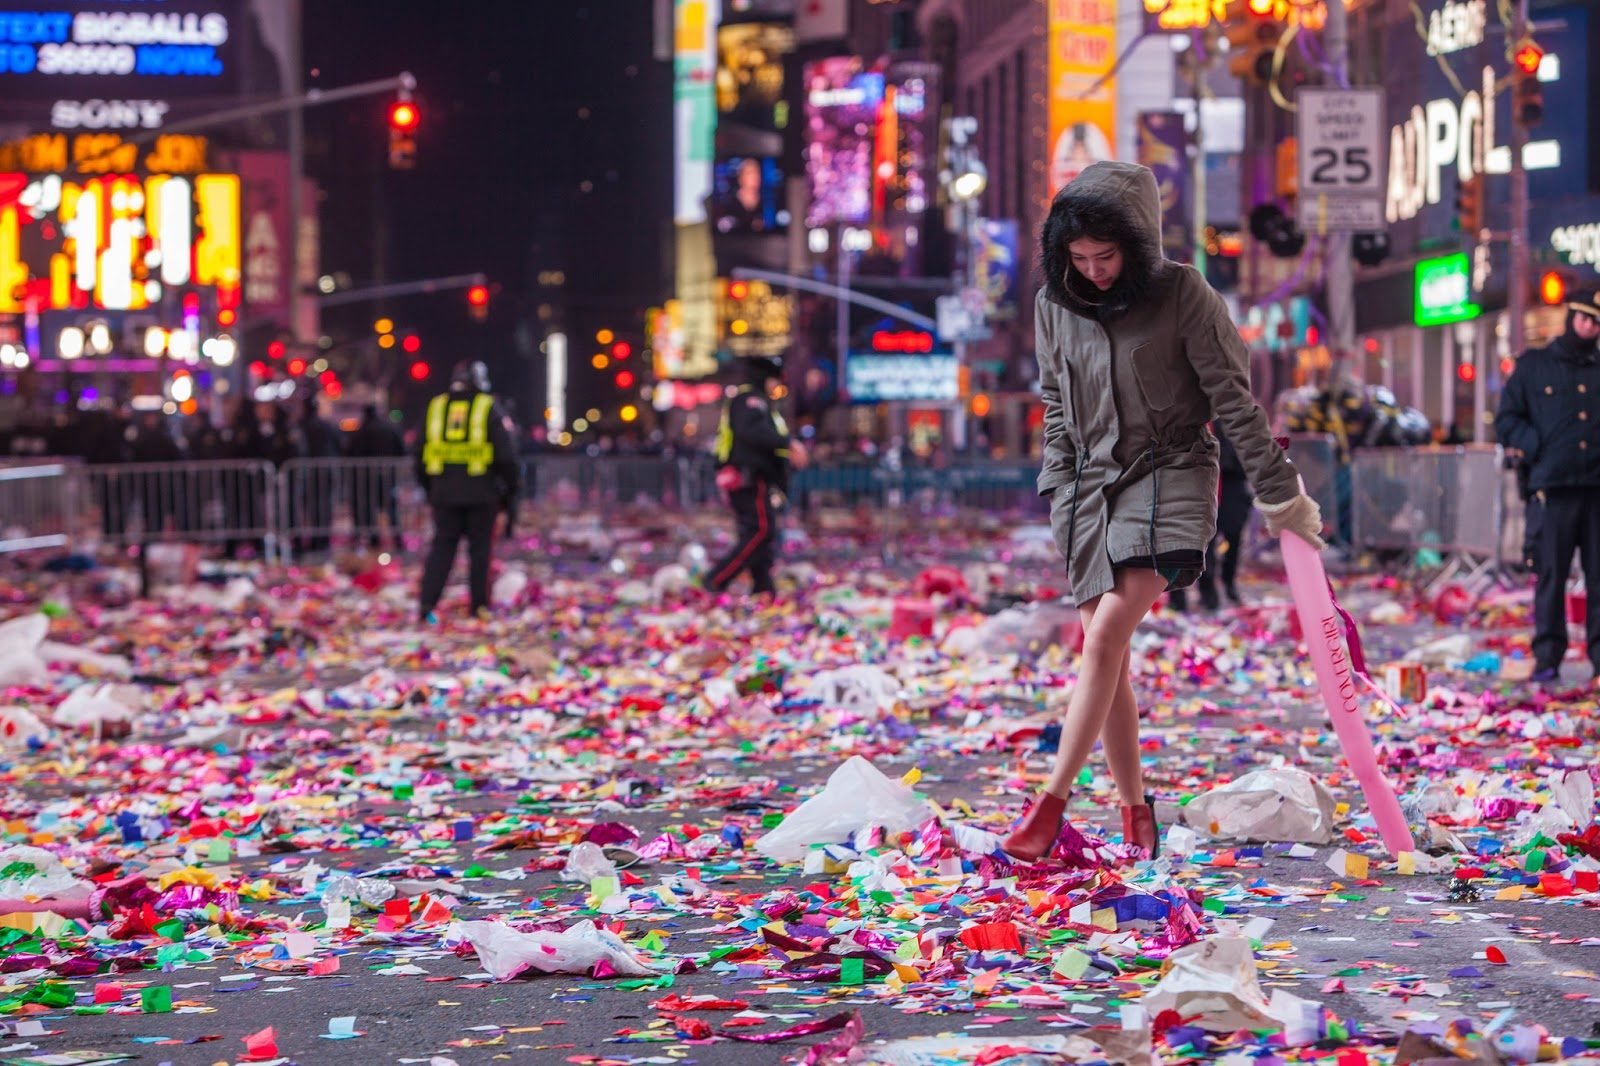 The Impressive Logistics Behind Times Square's New Year's Eve